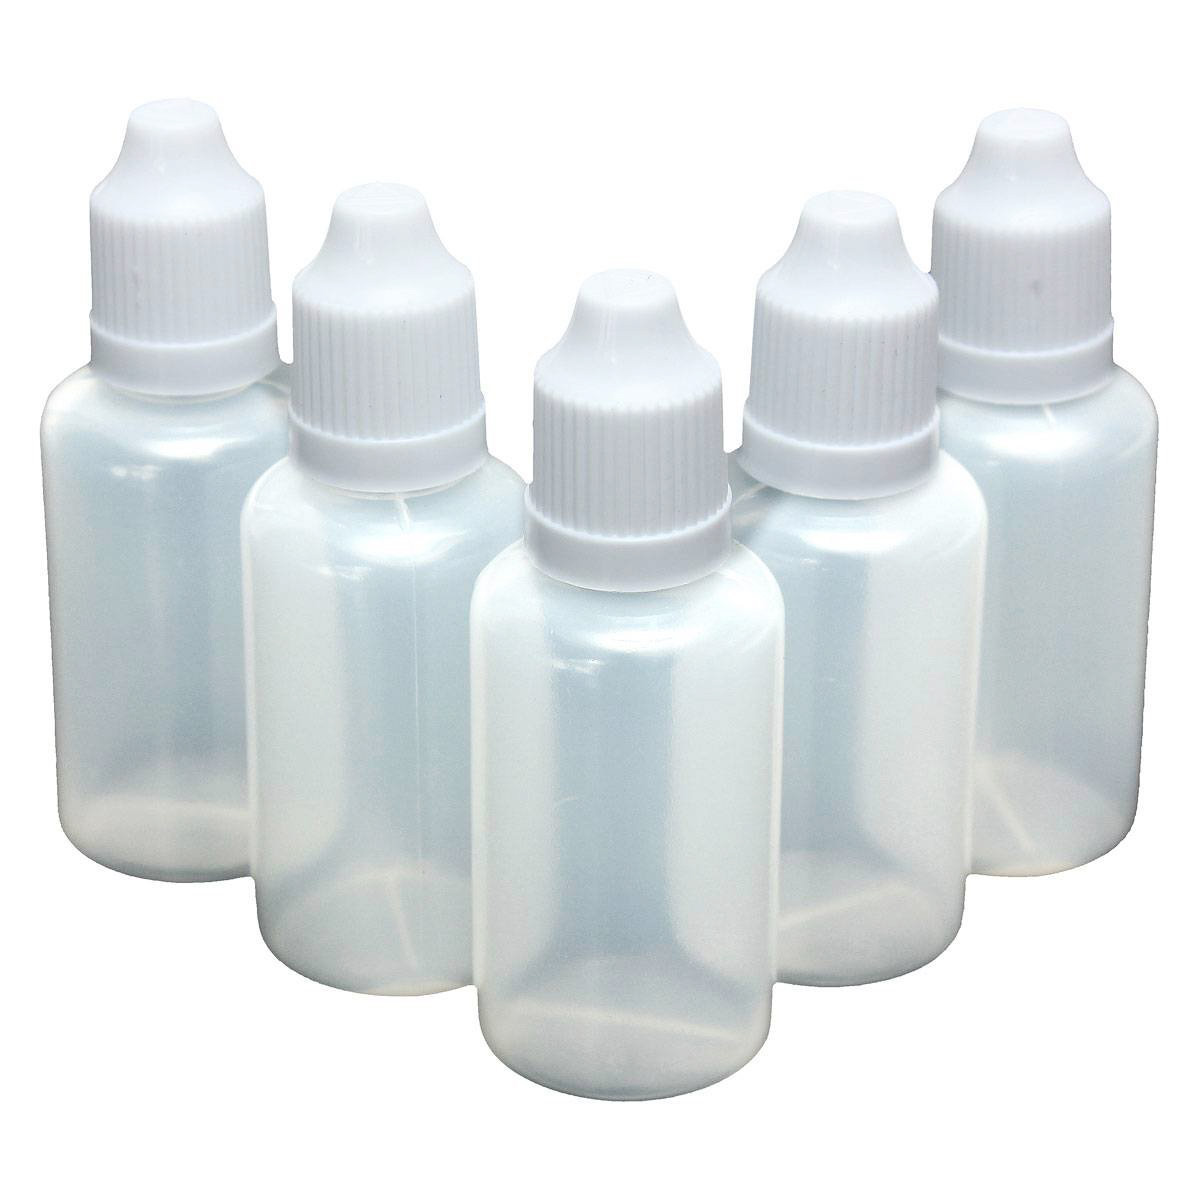 MyMei wholesale 100 pcs 5ml small glass vials with cork tops bottles little empty jars 22 30mm free shipping